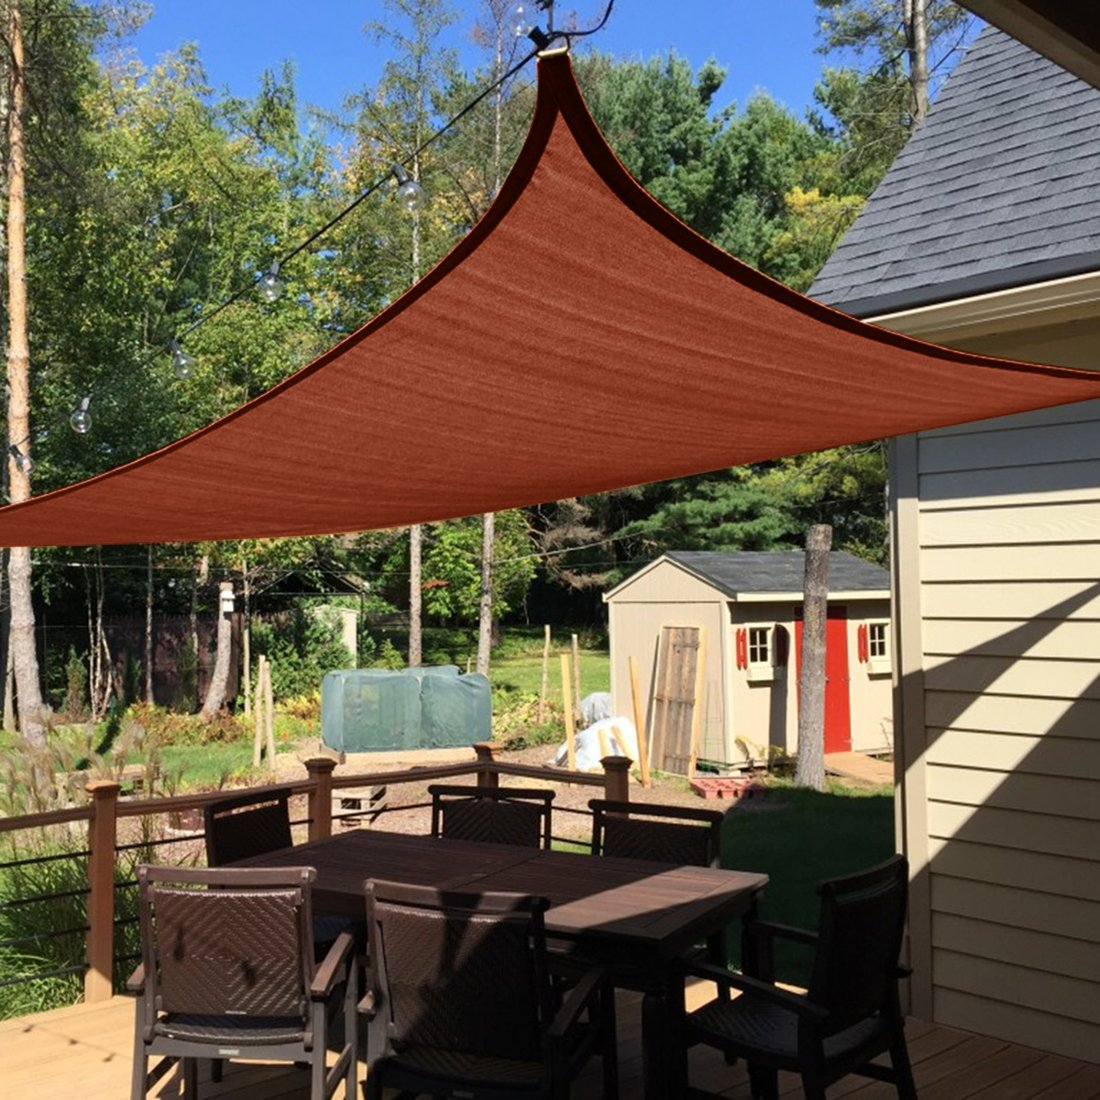 Peaktop 98 UV Block 20x16Ft Rectangle Sun Shade Sail Canopy Sun Shelter Perfect for Outdoor Patio Terracotta with Free Hardware Kit